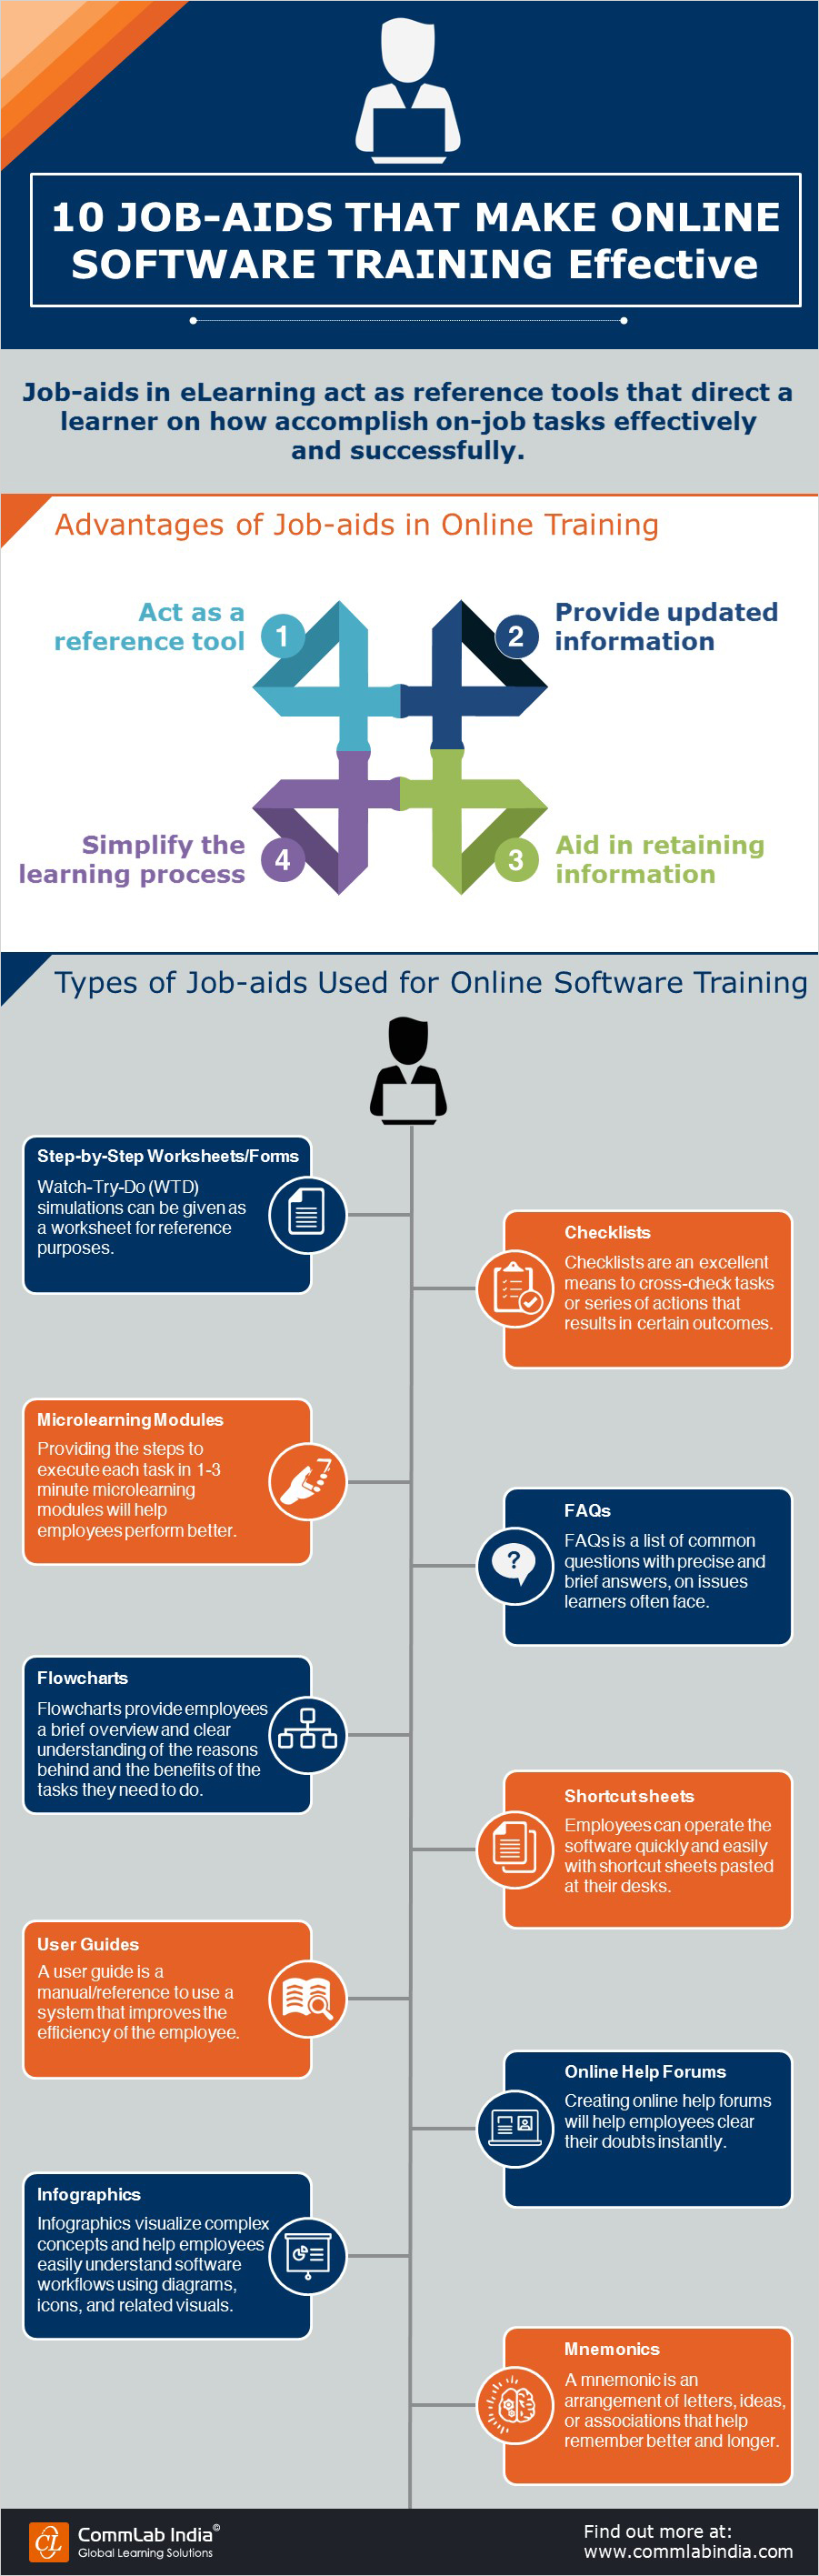 10 Job-Aids That Make Online Software Training Handy [Infographic]